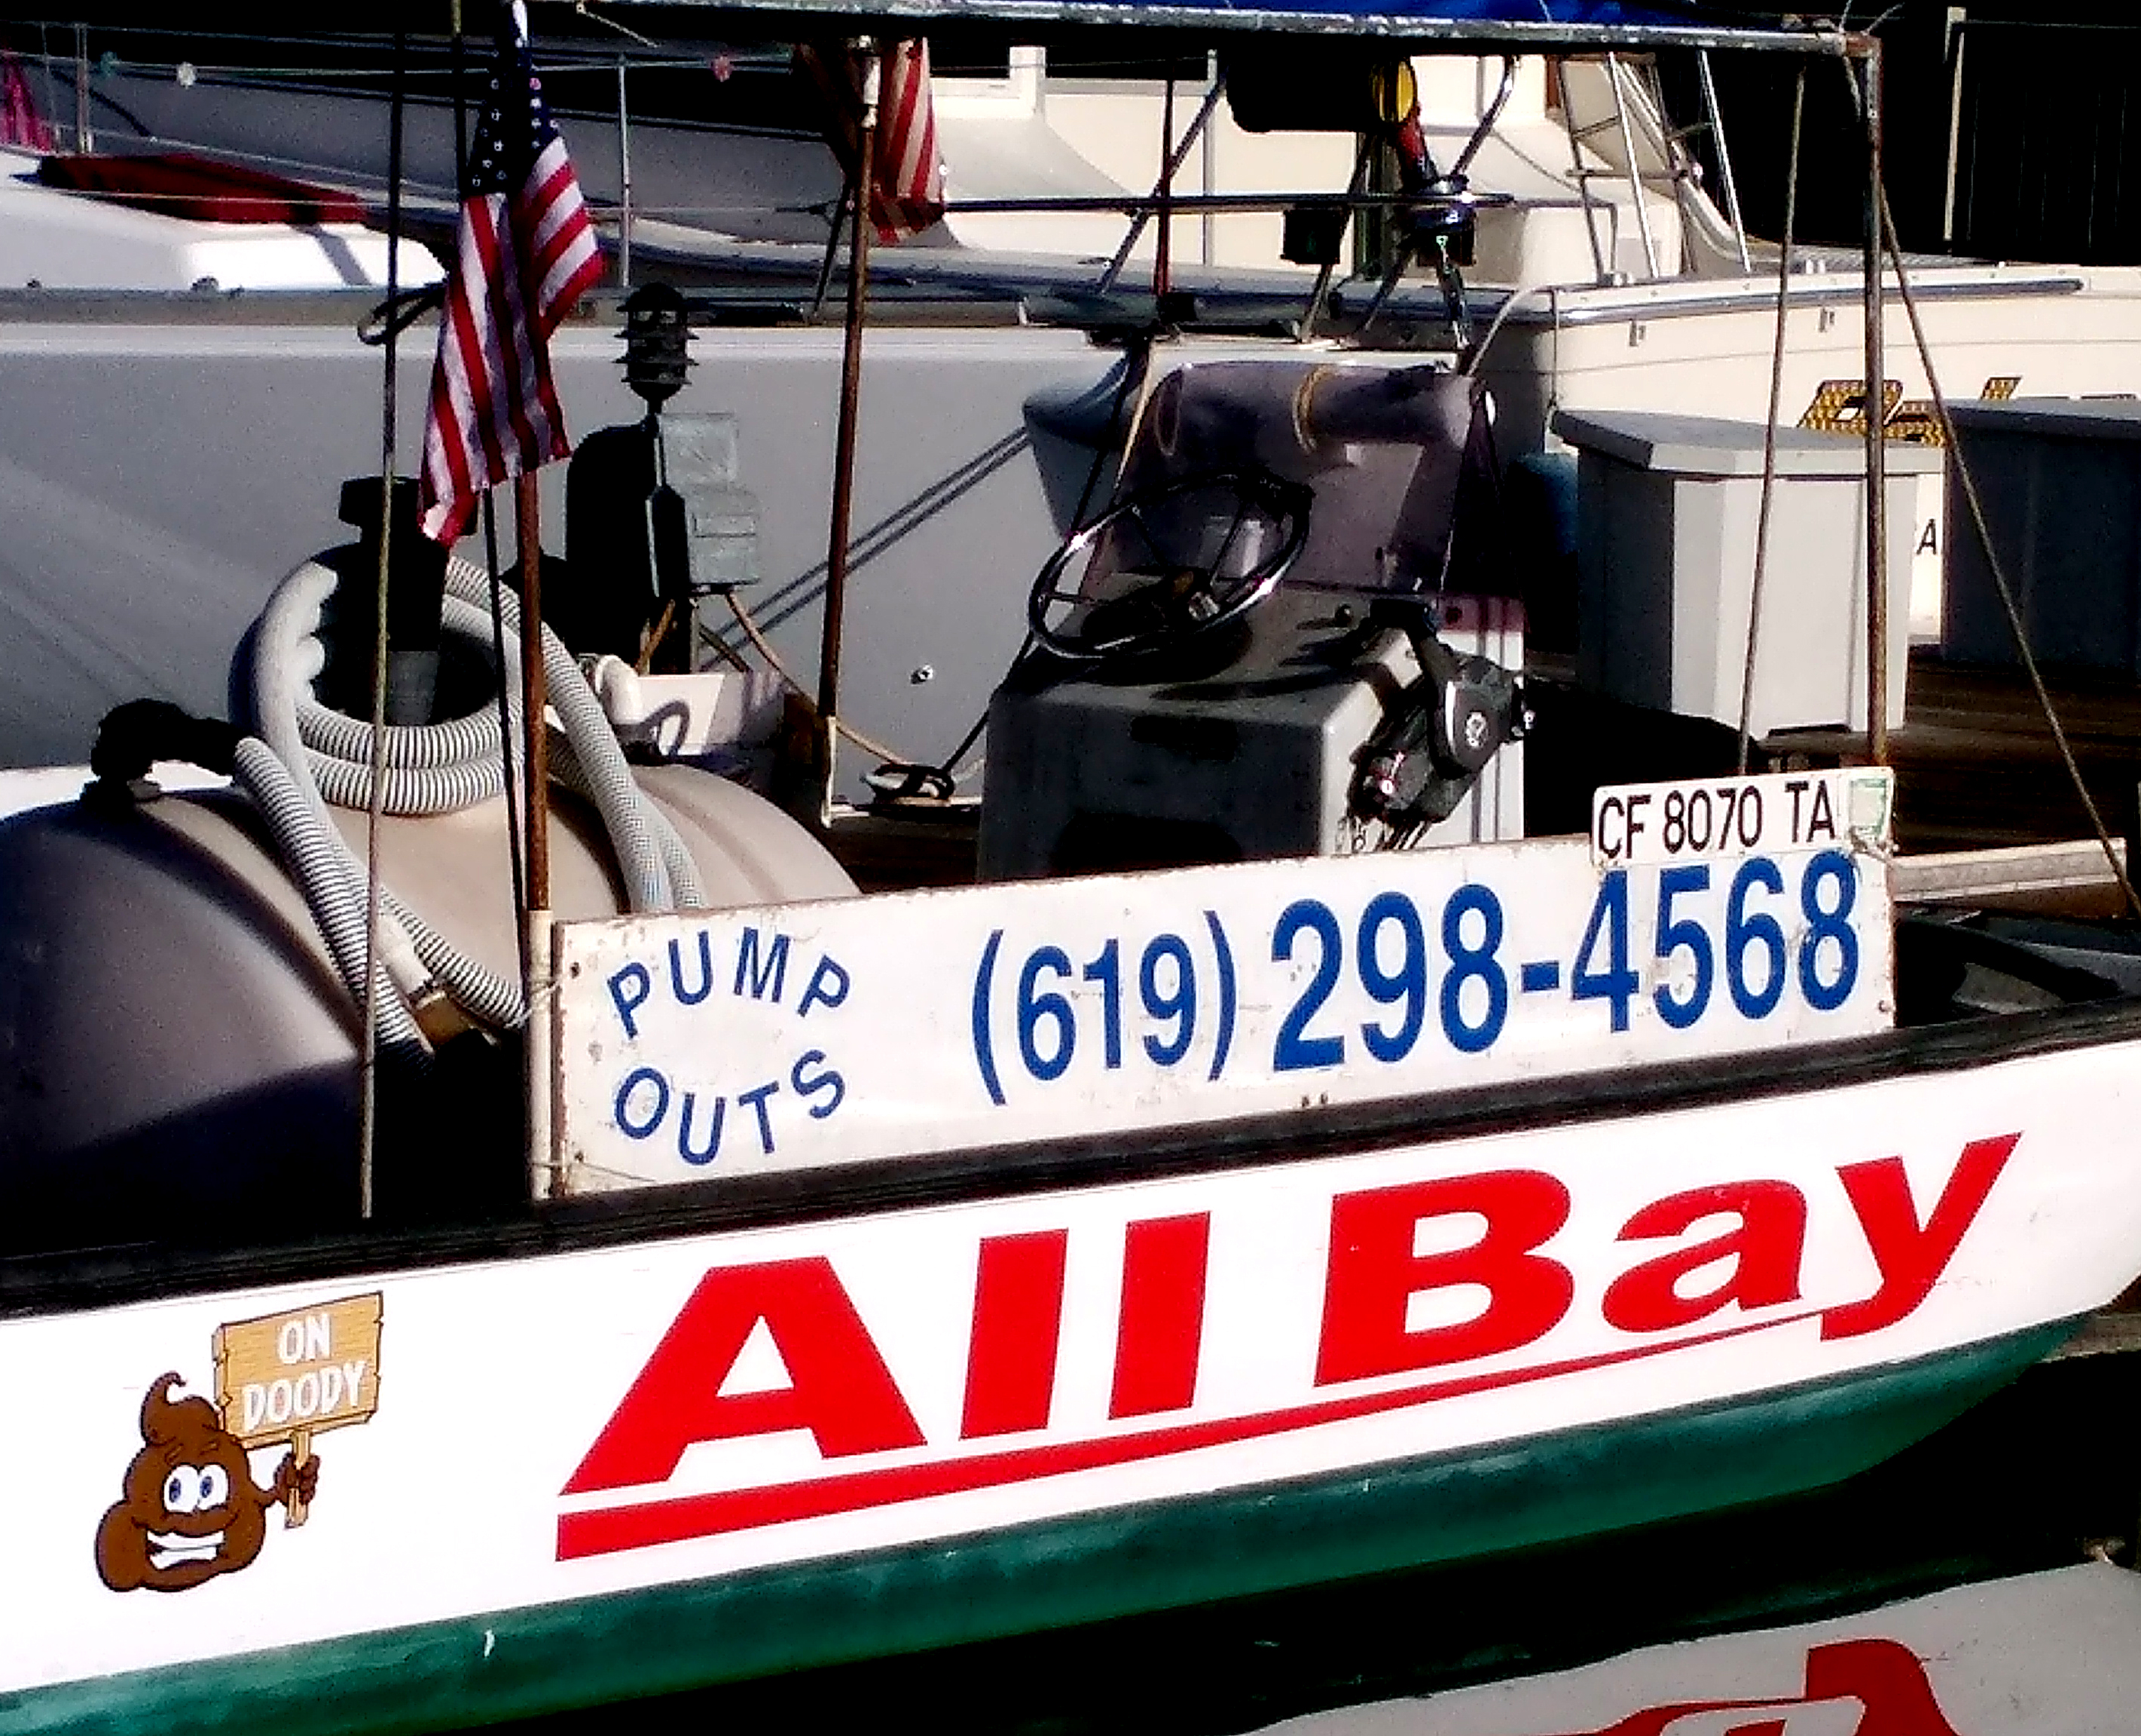 All Bay Marine Services